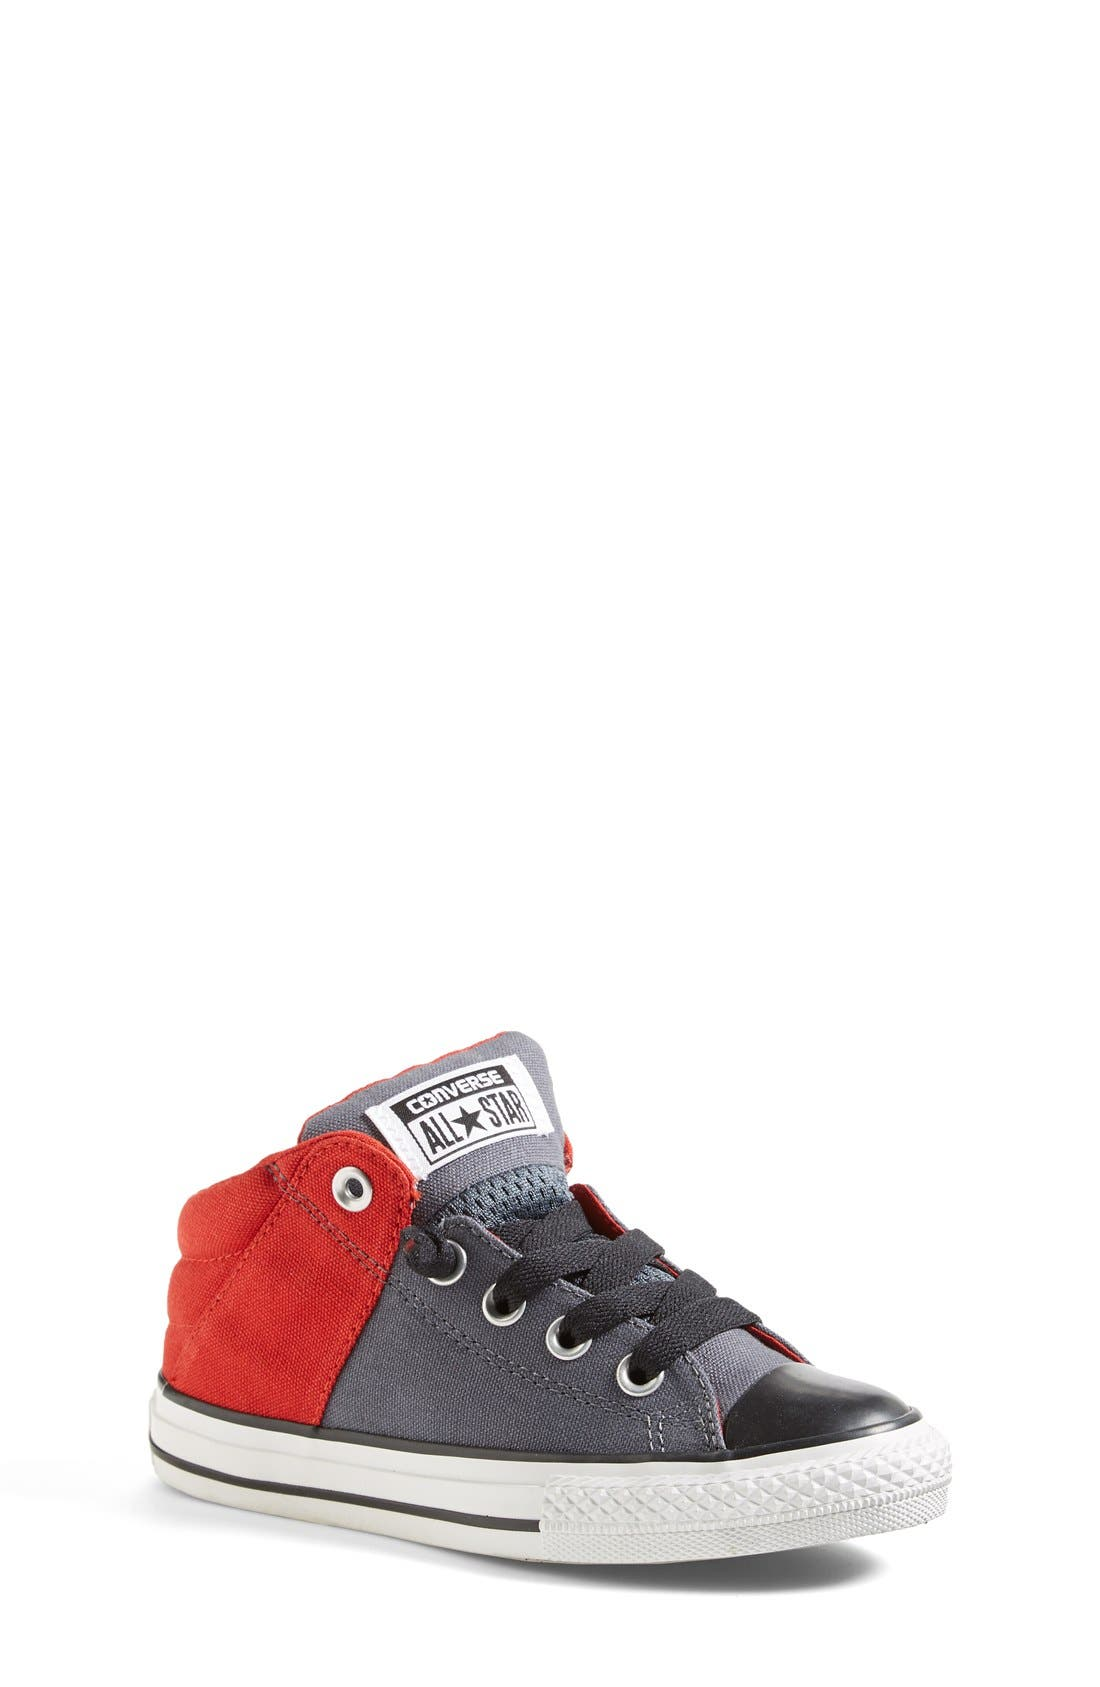 Main Image - Converse Chuck Taylor® All Star® 'Axel' Mid Top Sneaker (Toddler, Little Kid & Big Kid)